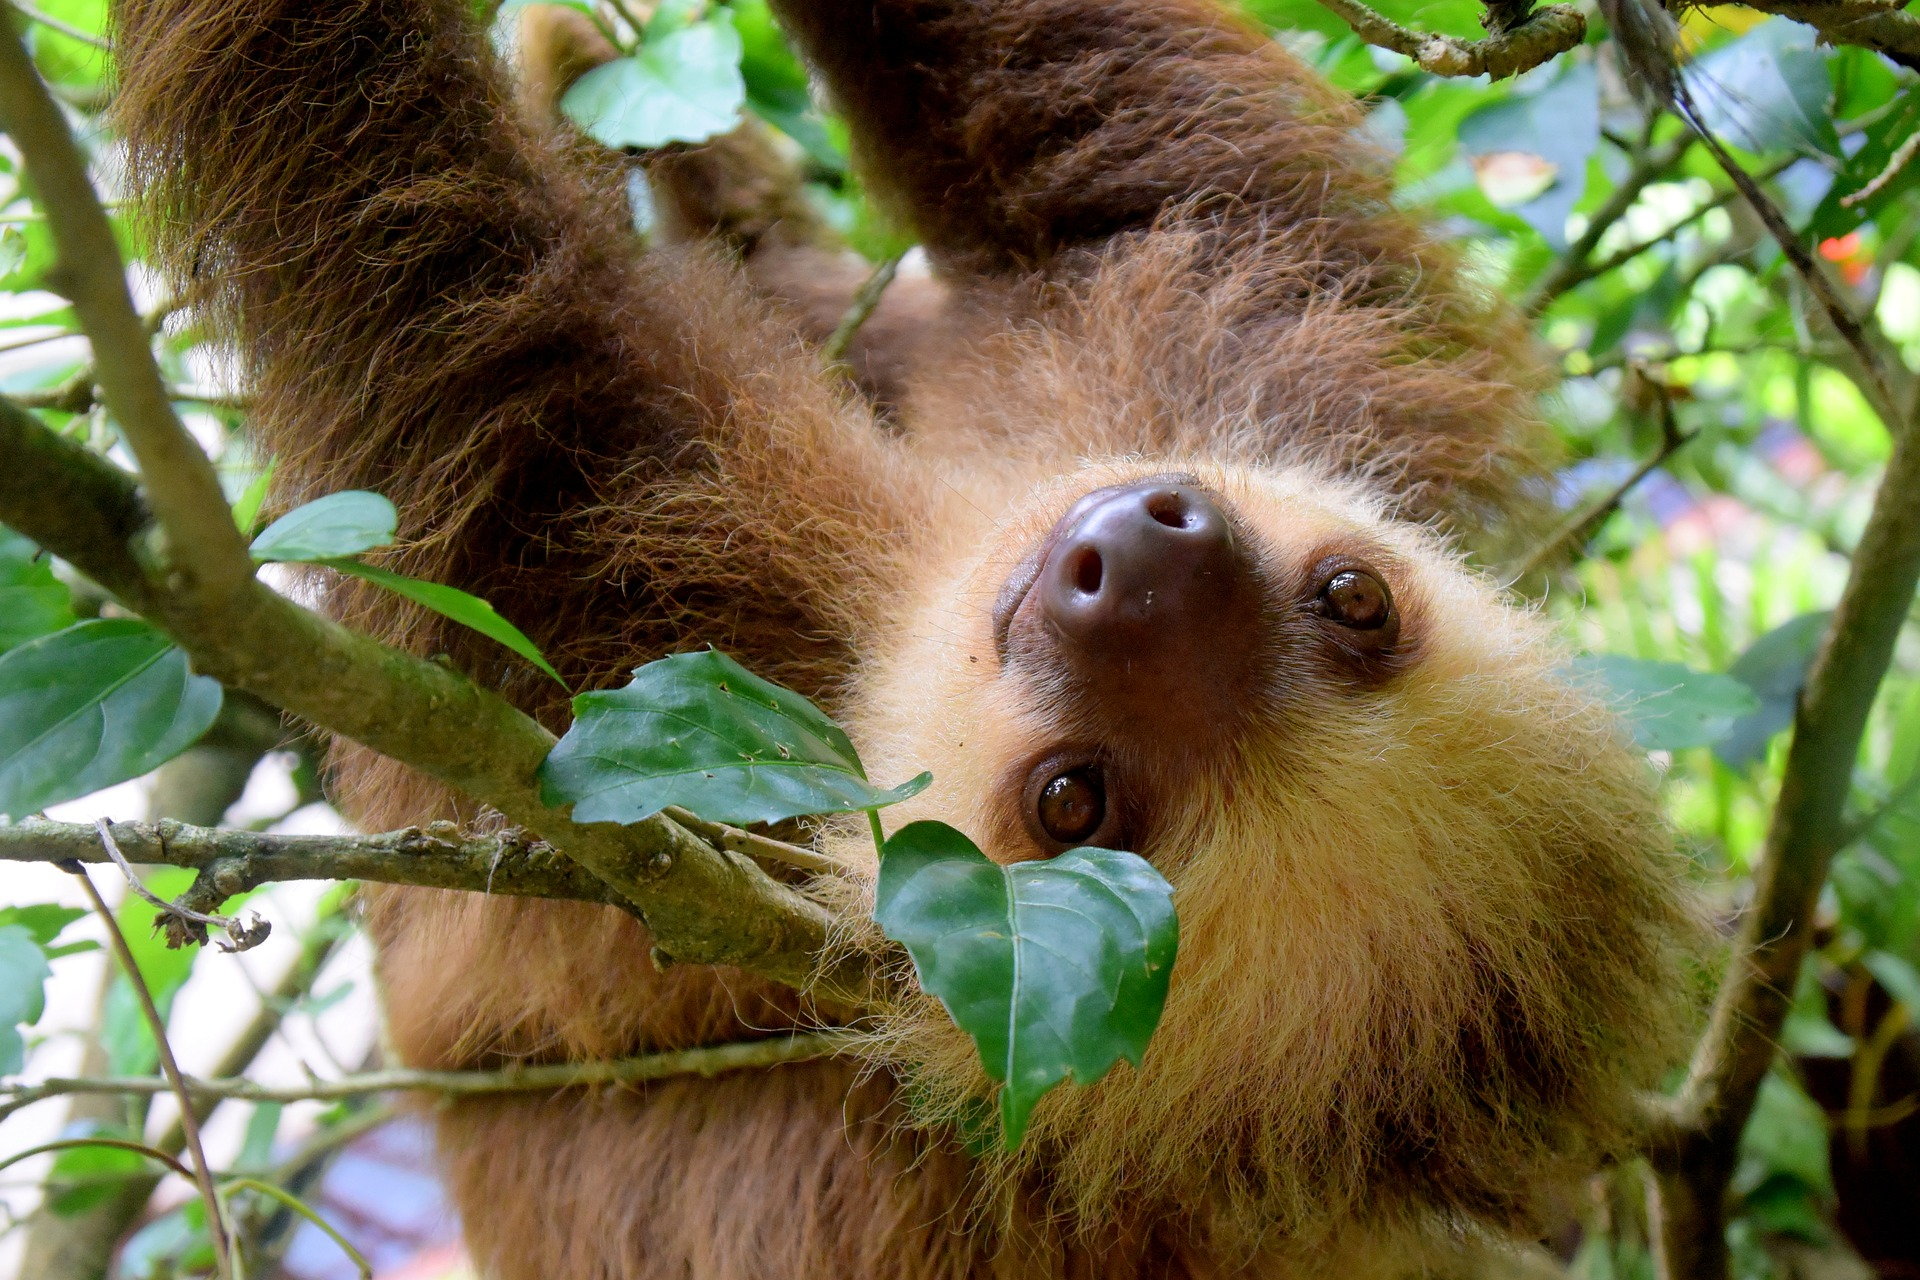 Sloth in Costa Rica hanging upside down from a tree branch